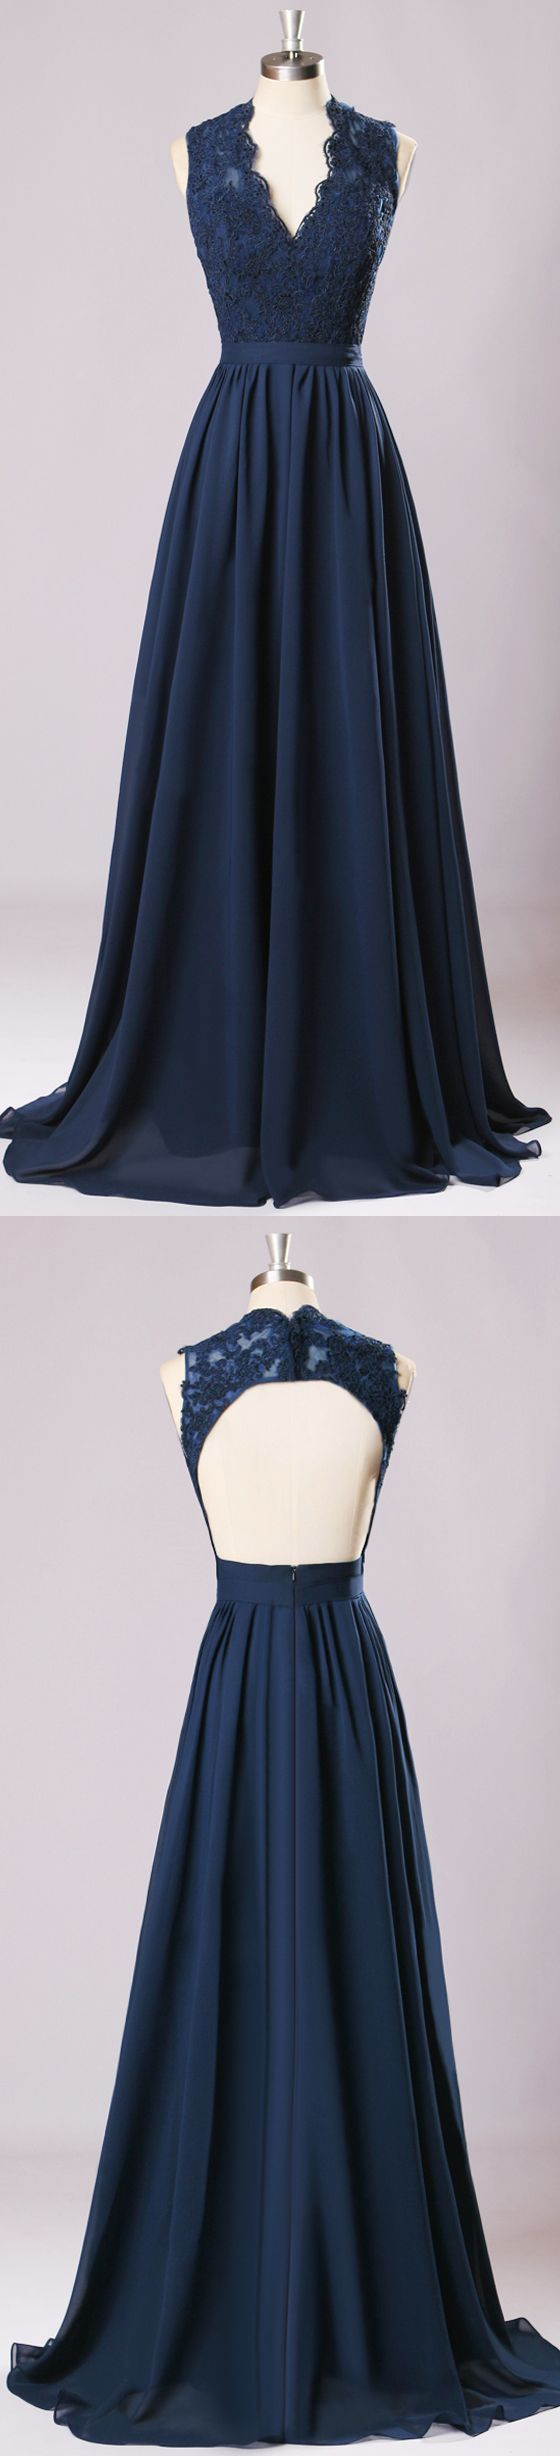 Best 20 navy bridesmaid dresses ideas on pinterestno signup new long bridesmaid dresses navy blue chiffon wedding party gownoff shoulder maid of ombrellifo Image collections